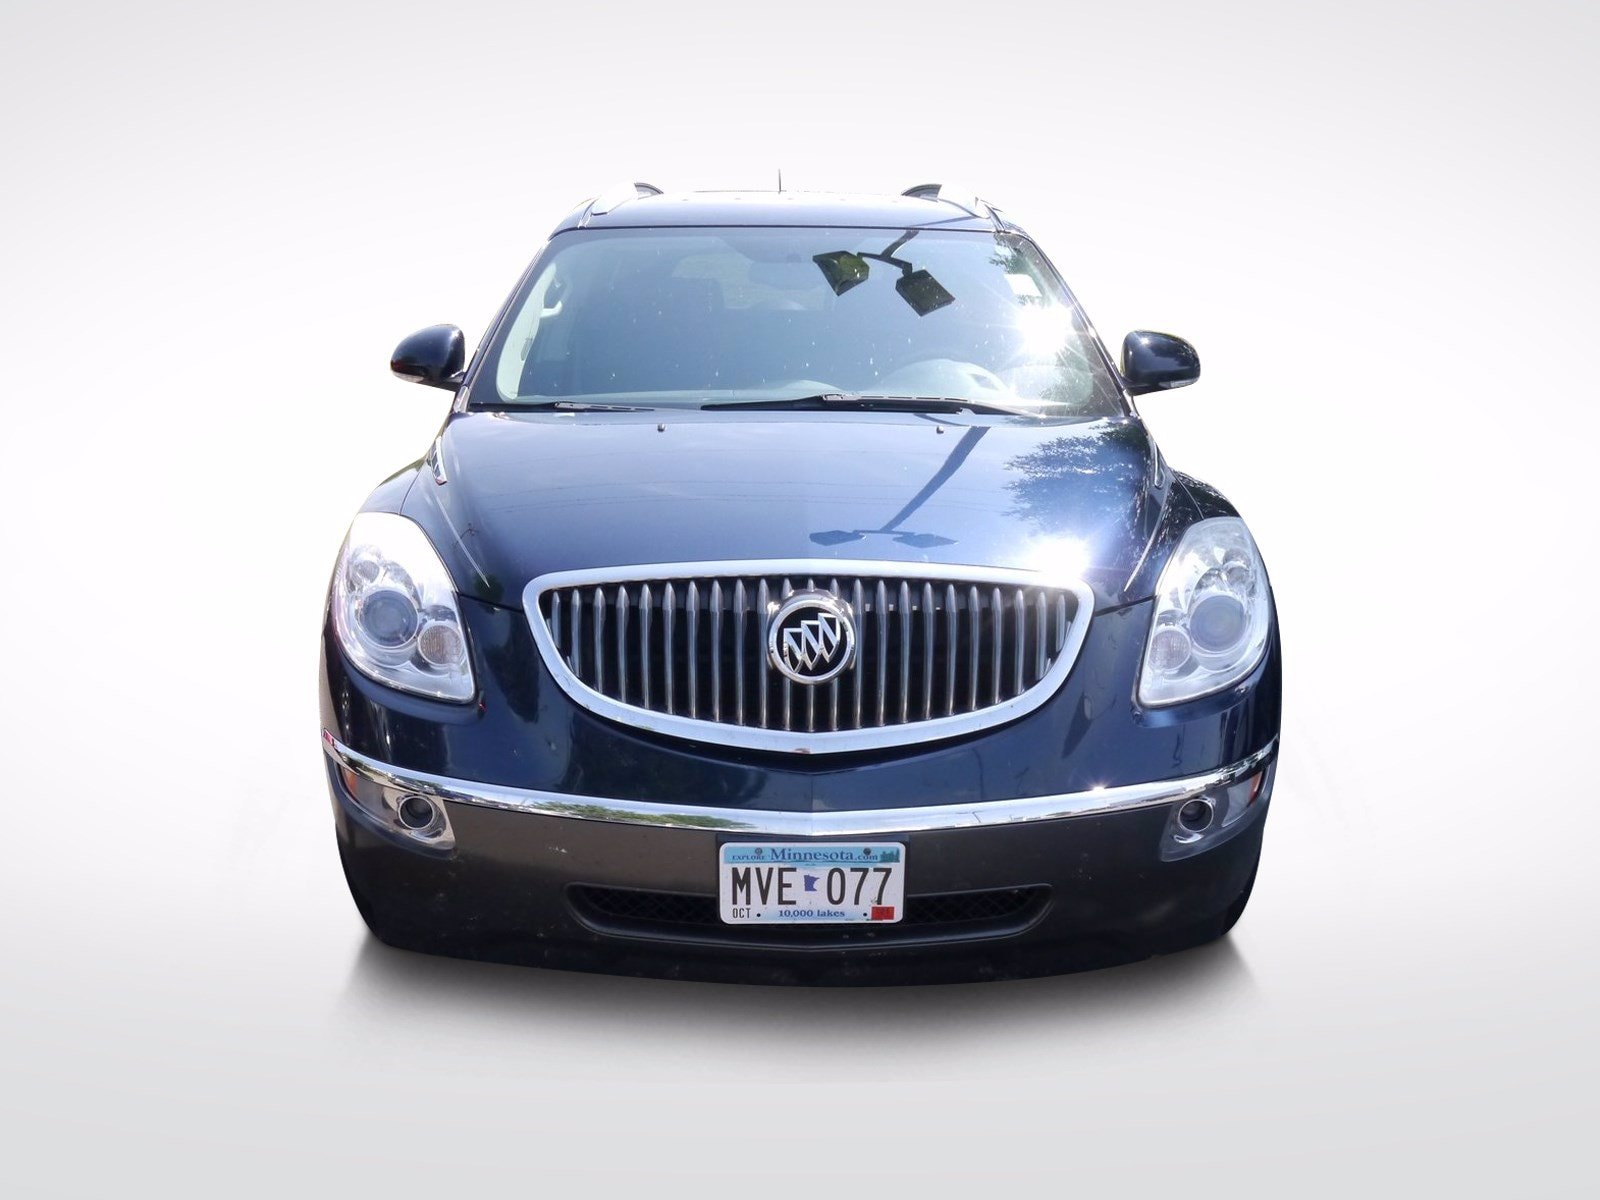 Used 2008 Buick Enclave CX with VIN 5GAER13758J303115 for sale in Baxter, Minnesota